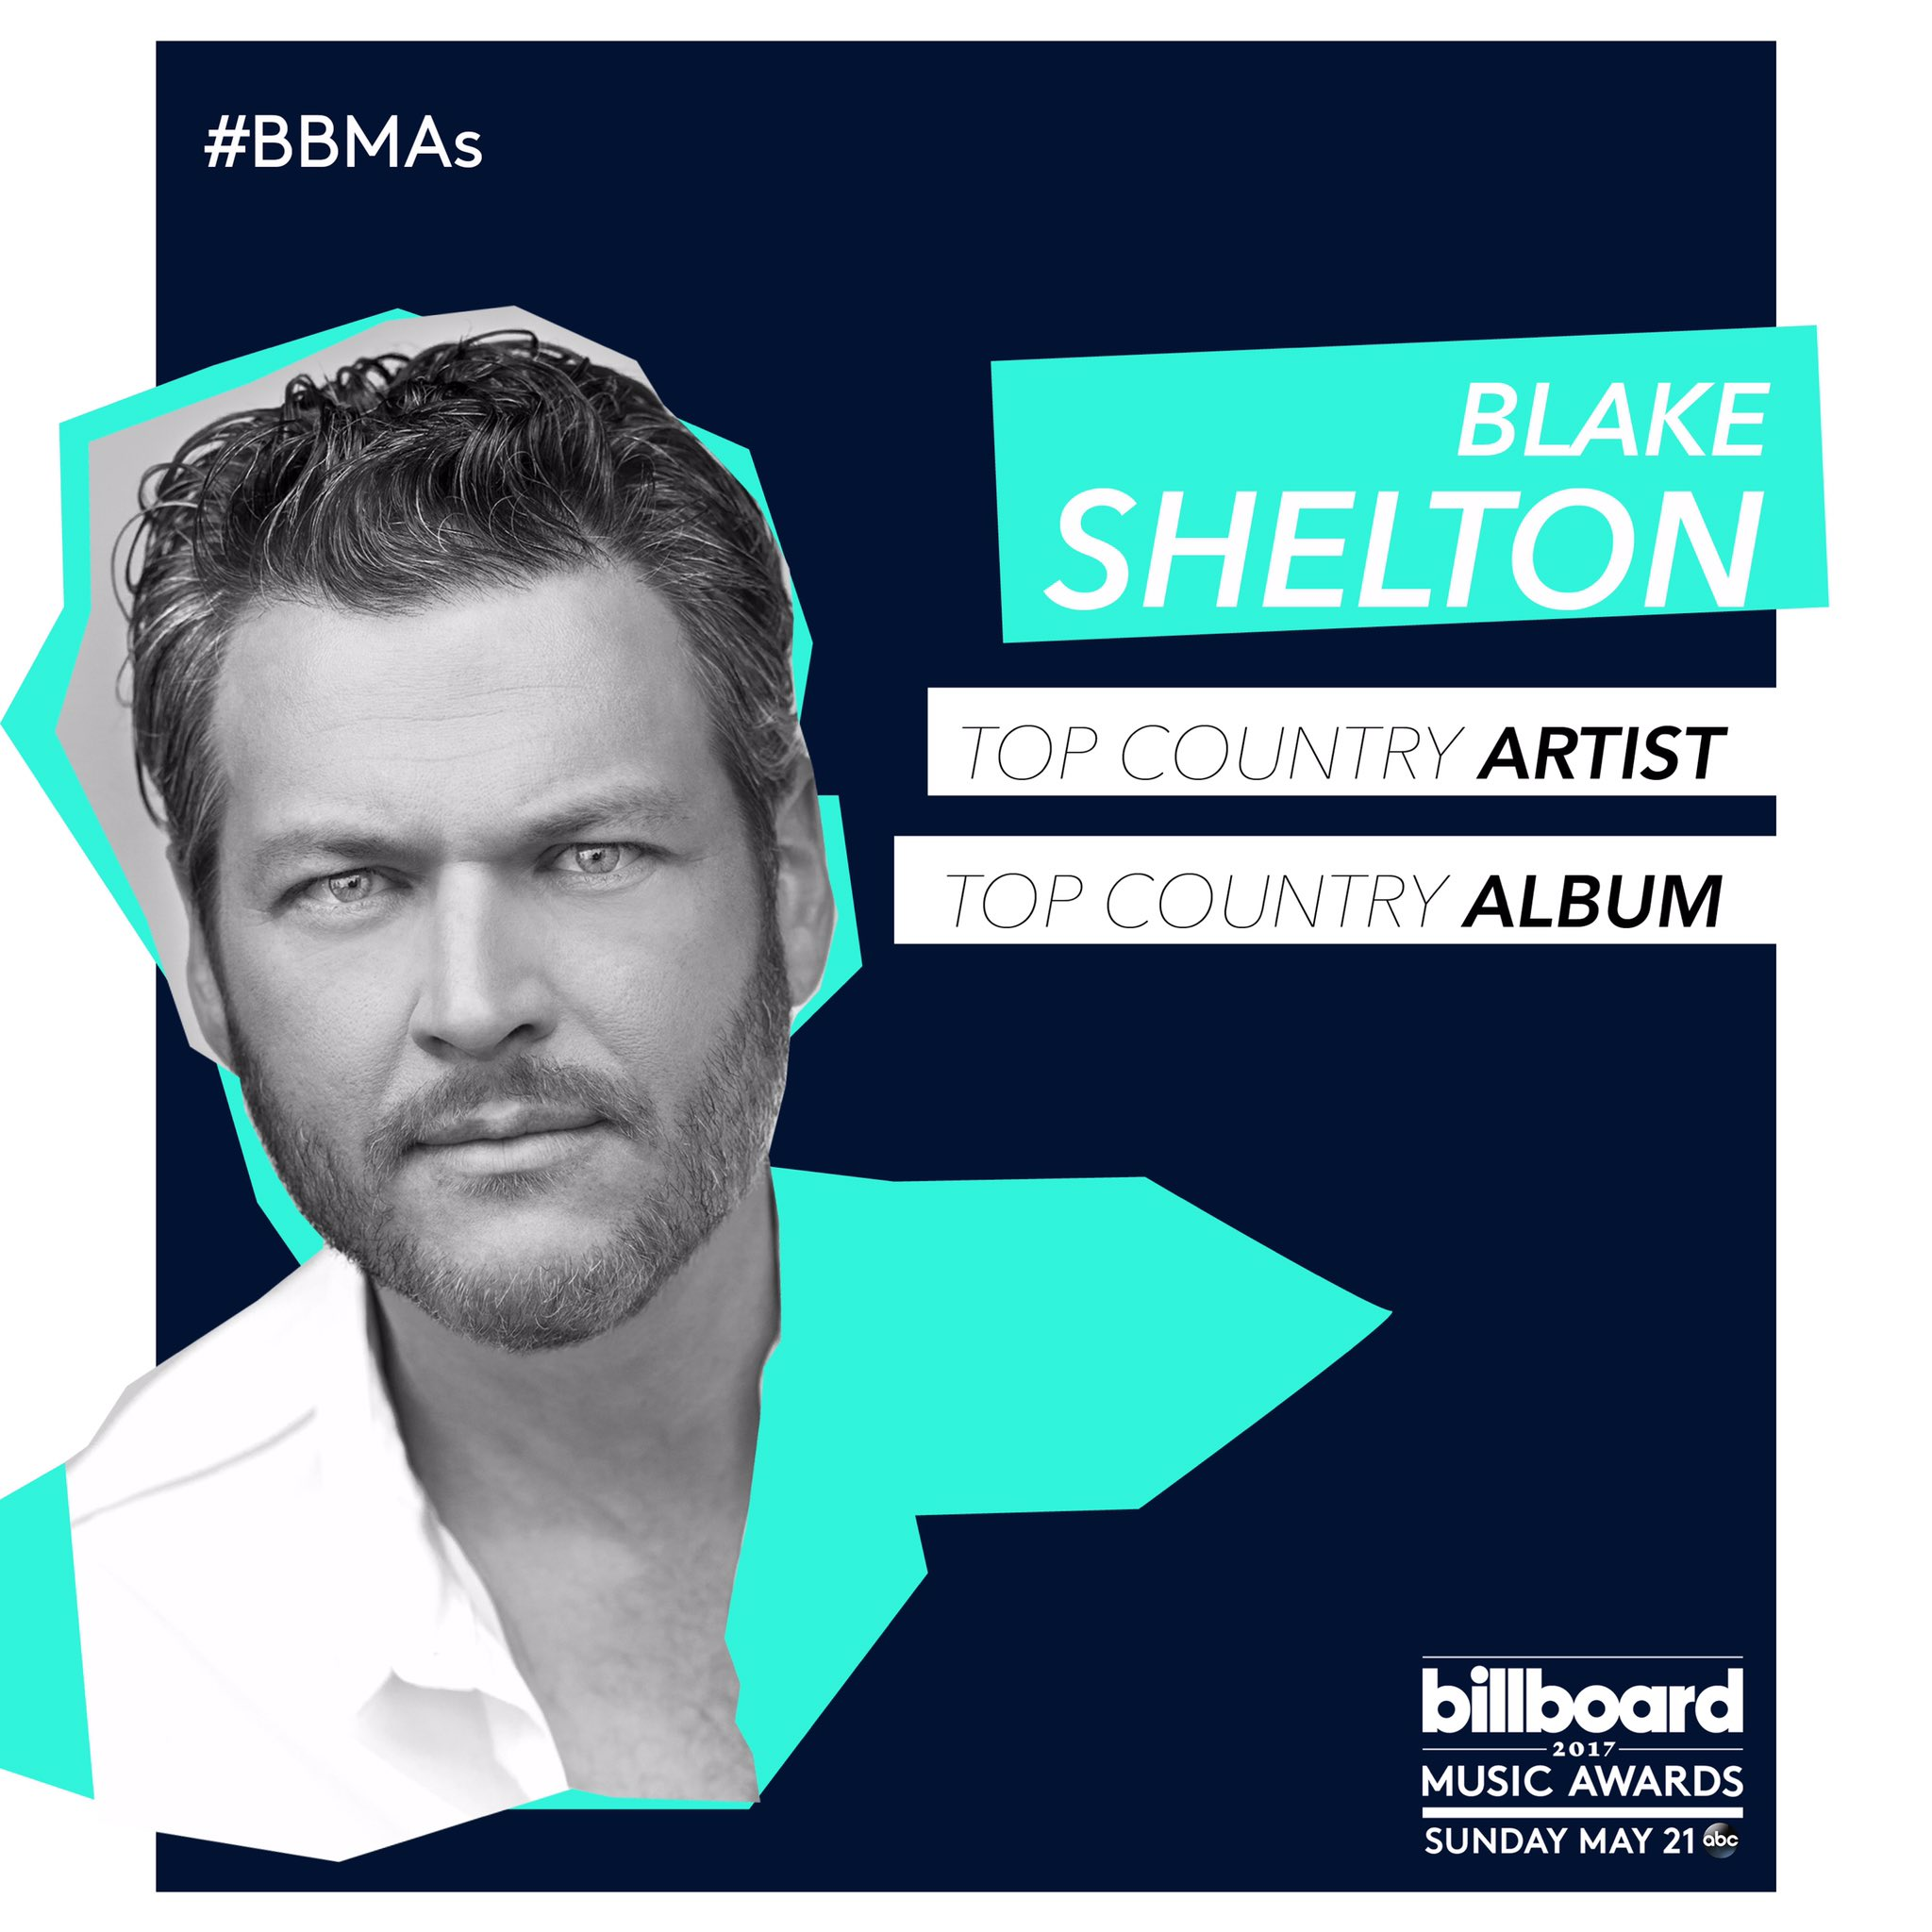 Thanks @bbmas! Y'all tune in  May 21st on ABC to catch the show! #BBMAs https://t.co/gbmFM7kZKP